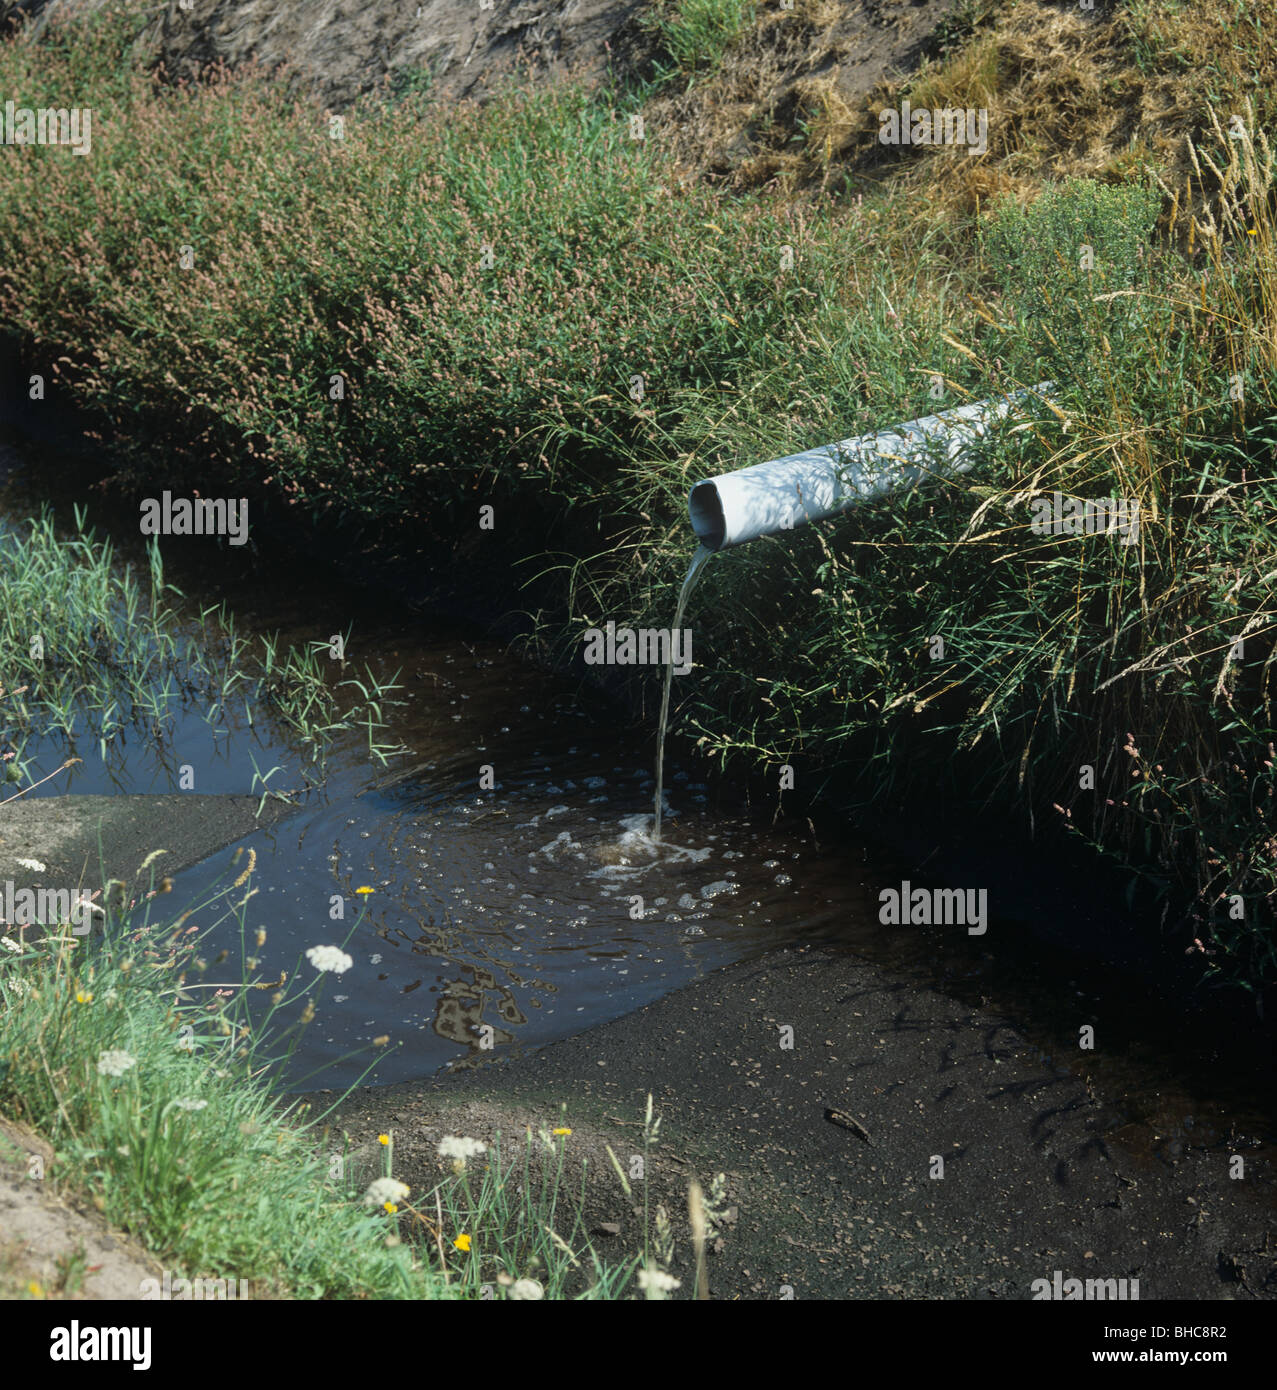 Water Drainage Stock Photos & Water Drainage Stock Images - Alamy